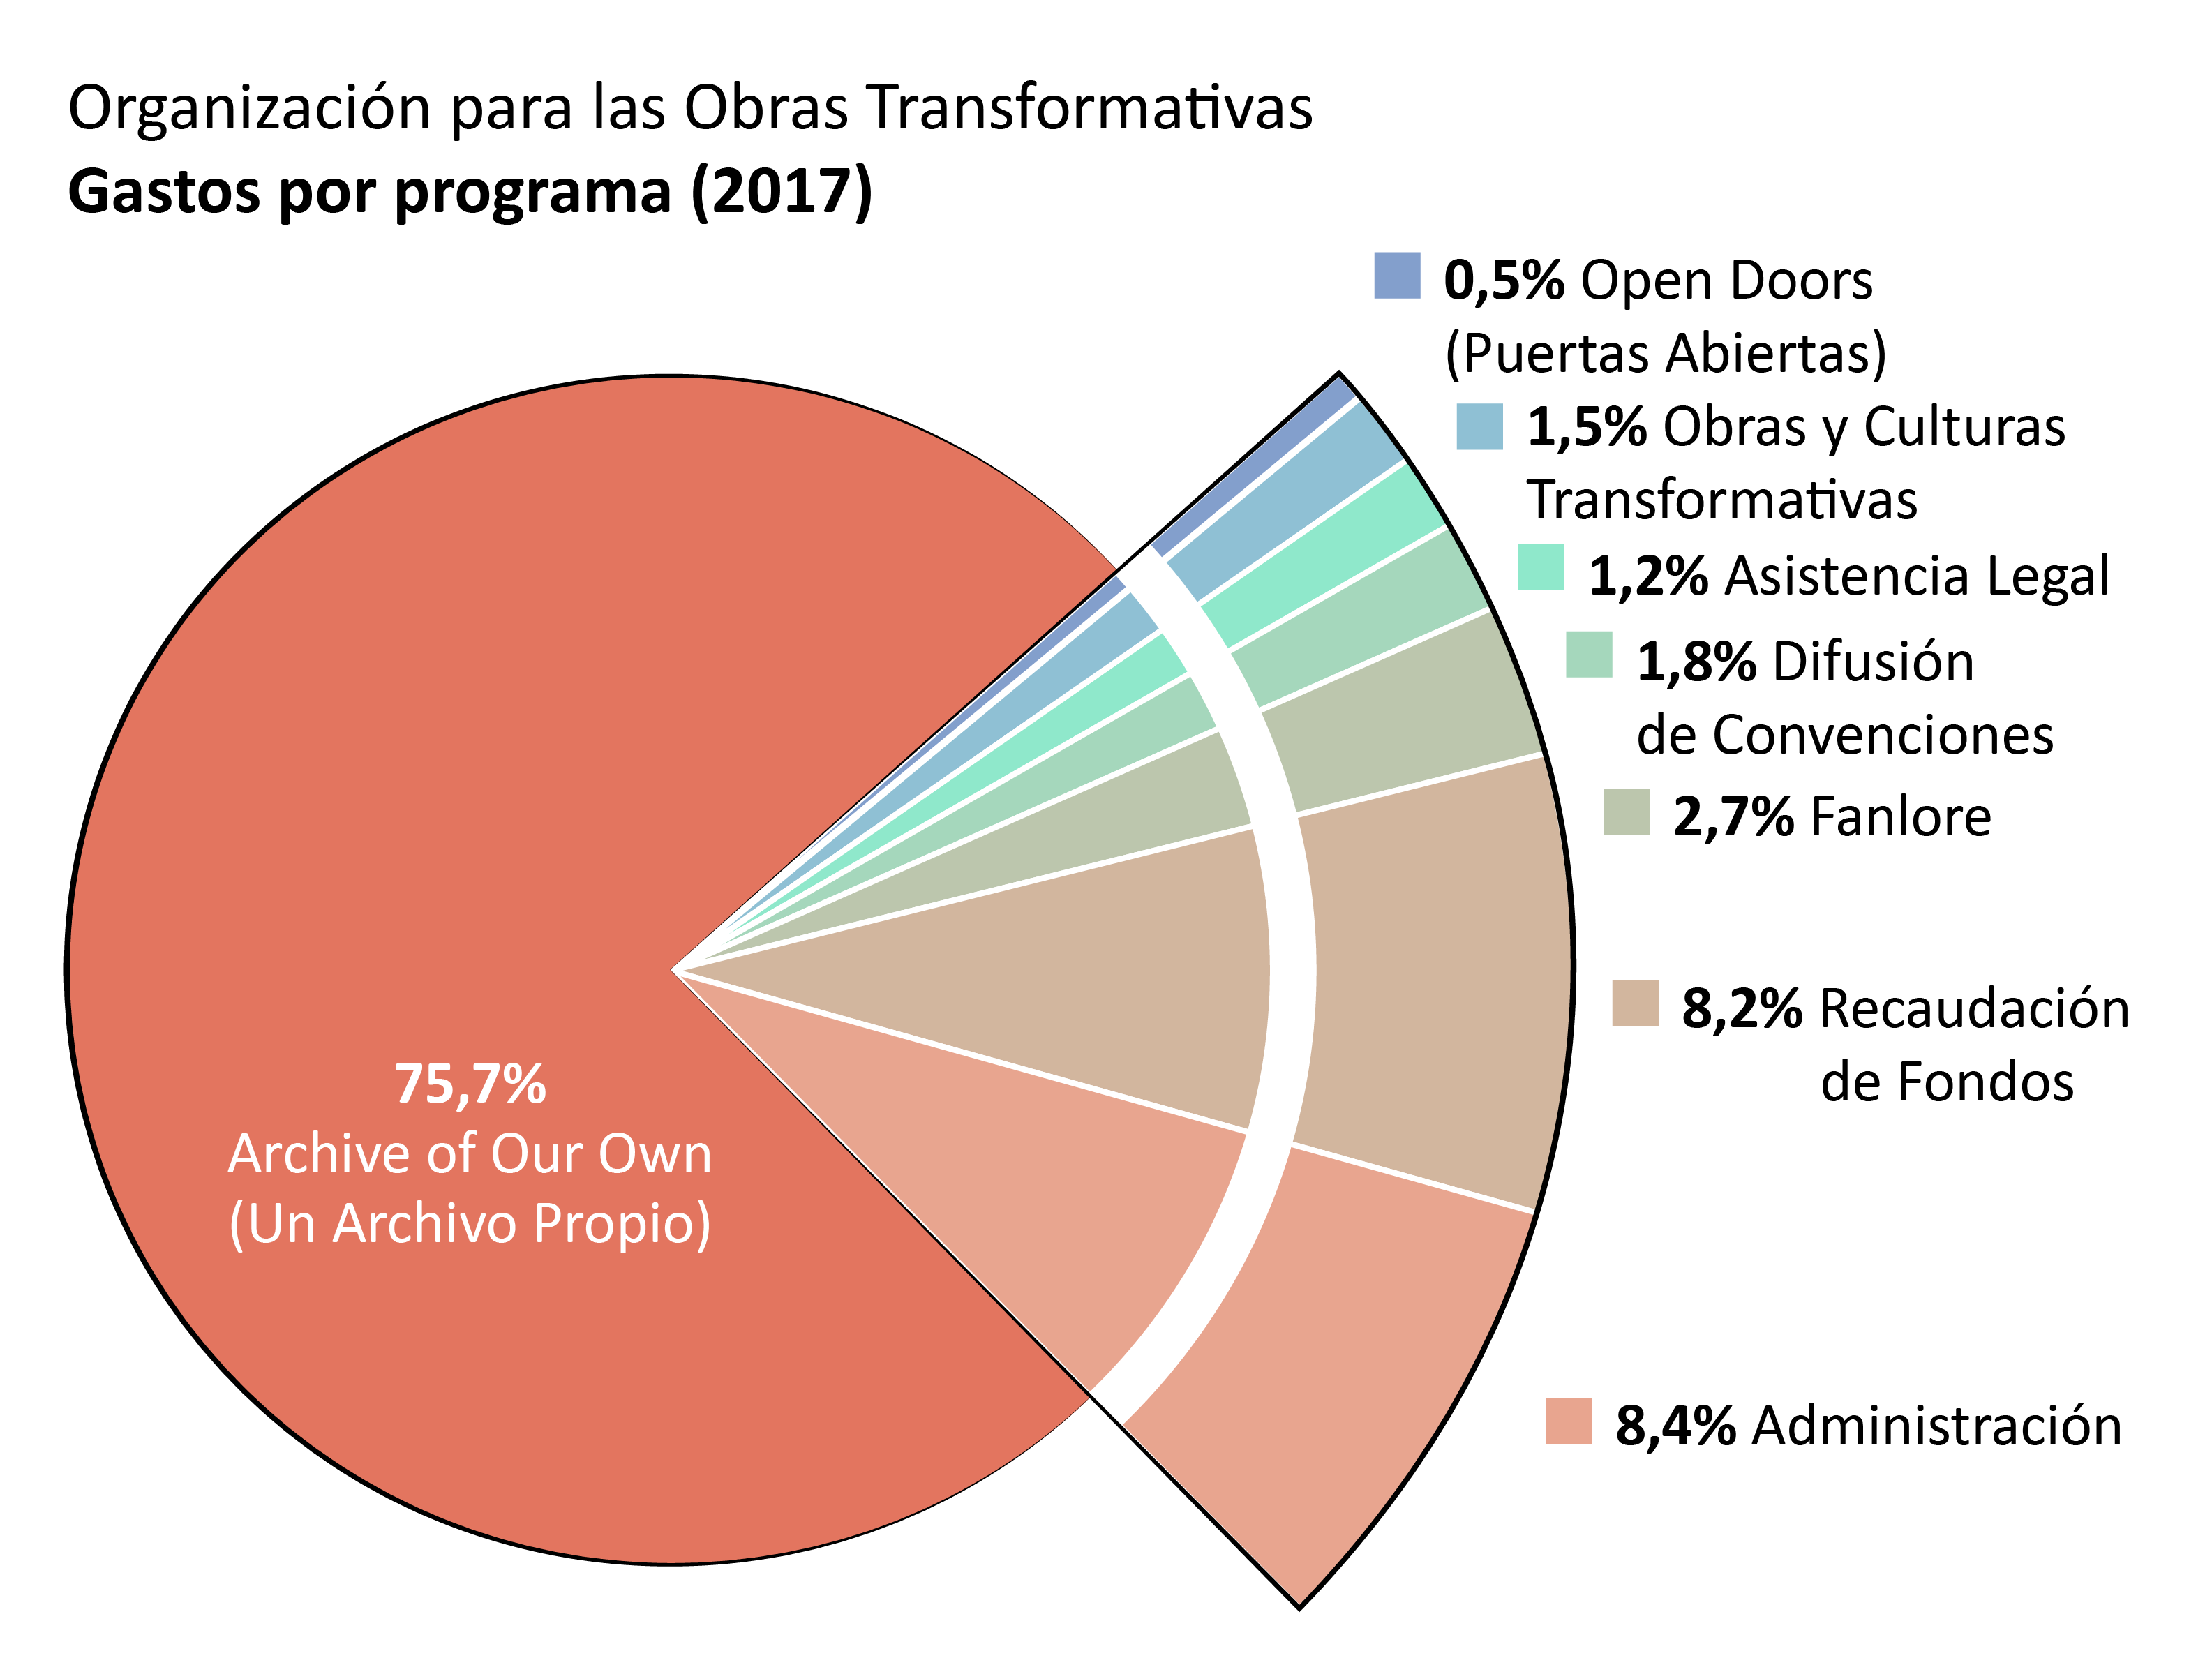 Gastos por programa:  Archive of Our Own - AO3 (Un Archivo Propio) : 75,7%. Open Doors (Puertas Abiertas) : 0,5%. Transformative Works and Cultures - TWC (Obras y Culturas Transformativas): 1,5%. Fanlore: 2,7%. Asistencia Legal: 1,2% Con Outreach (Difusión de Convenciones): 1,8%. Admin: 8,4%.Recaudación de Fondos: 8,2%.